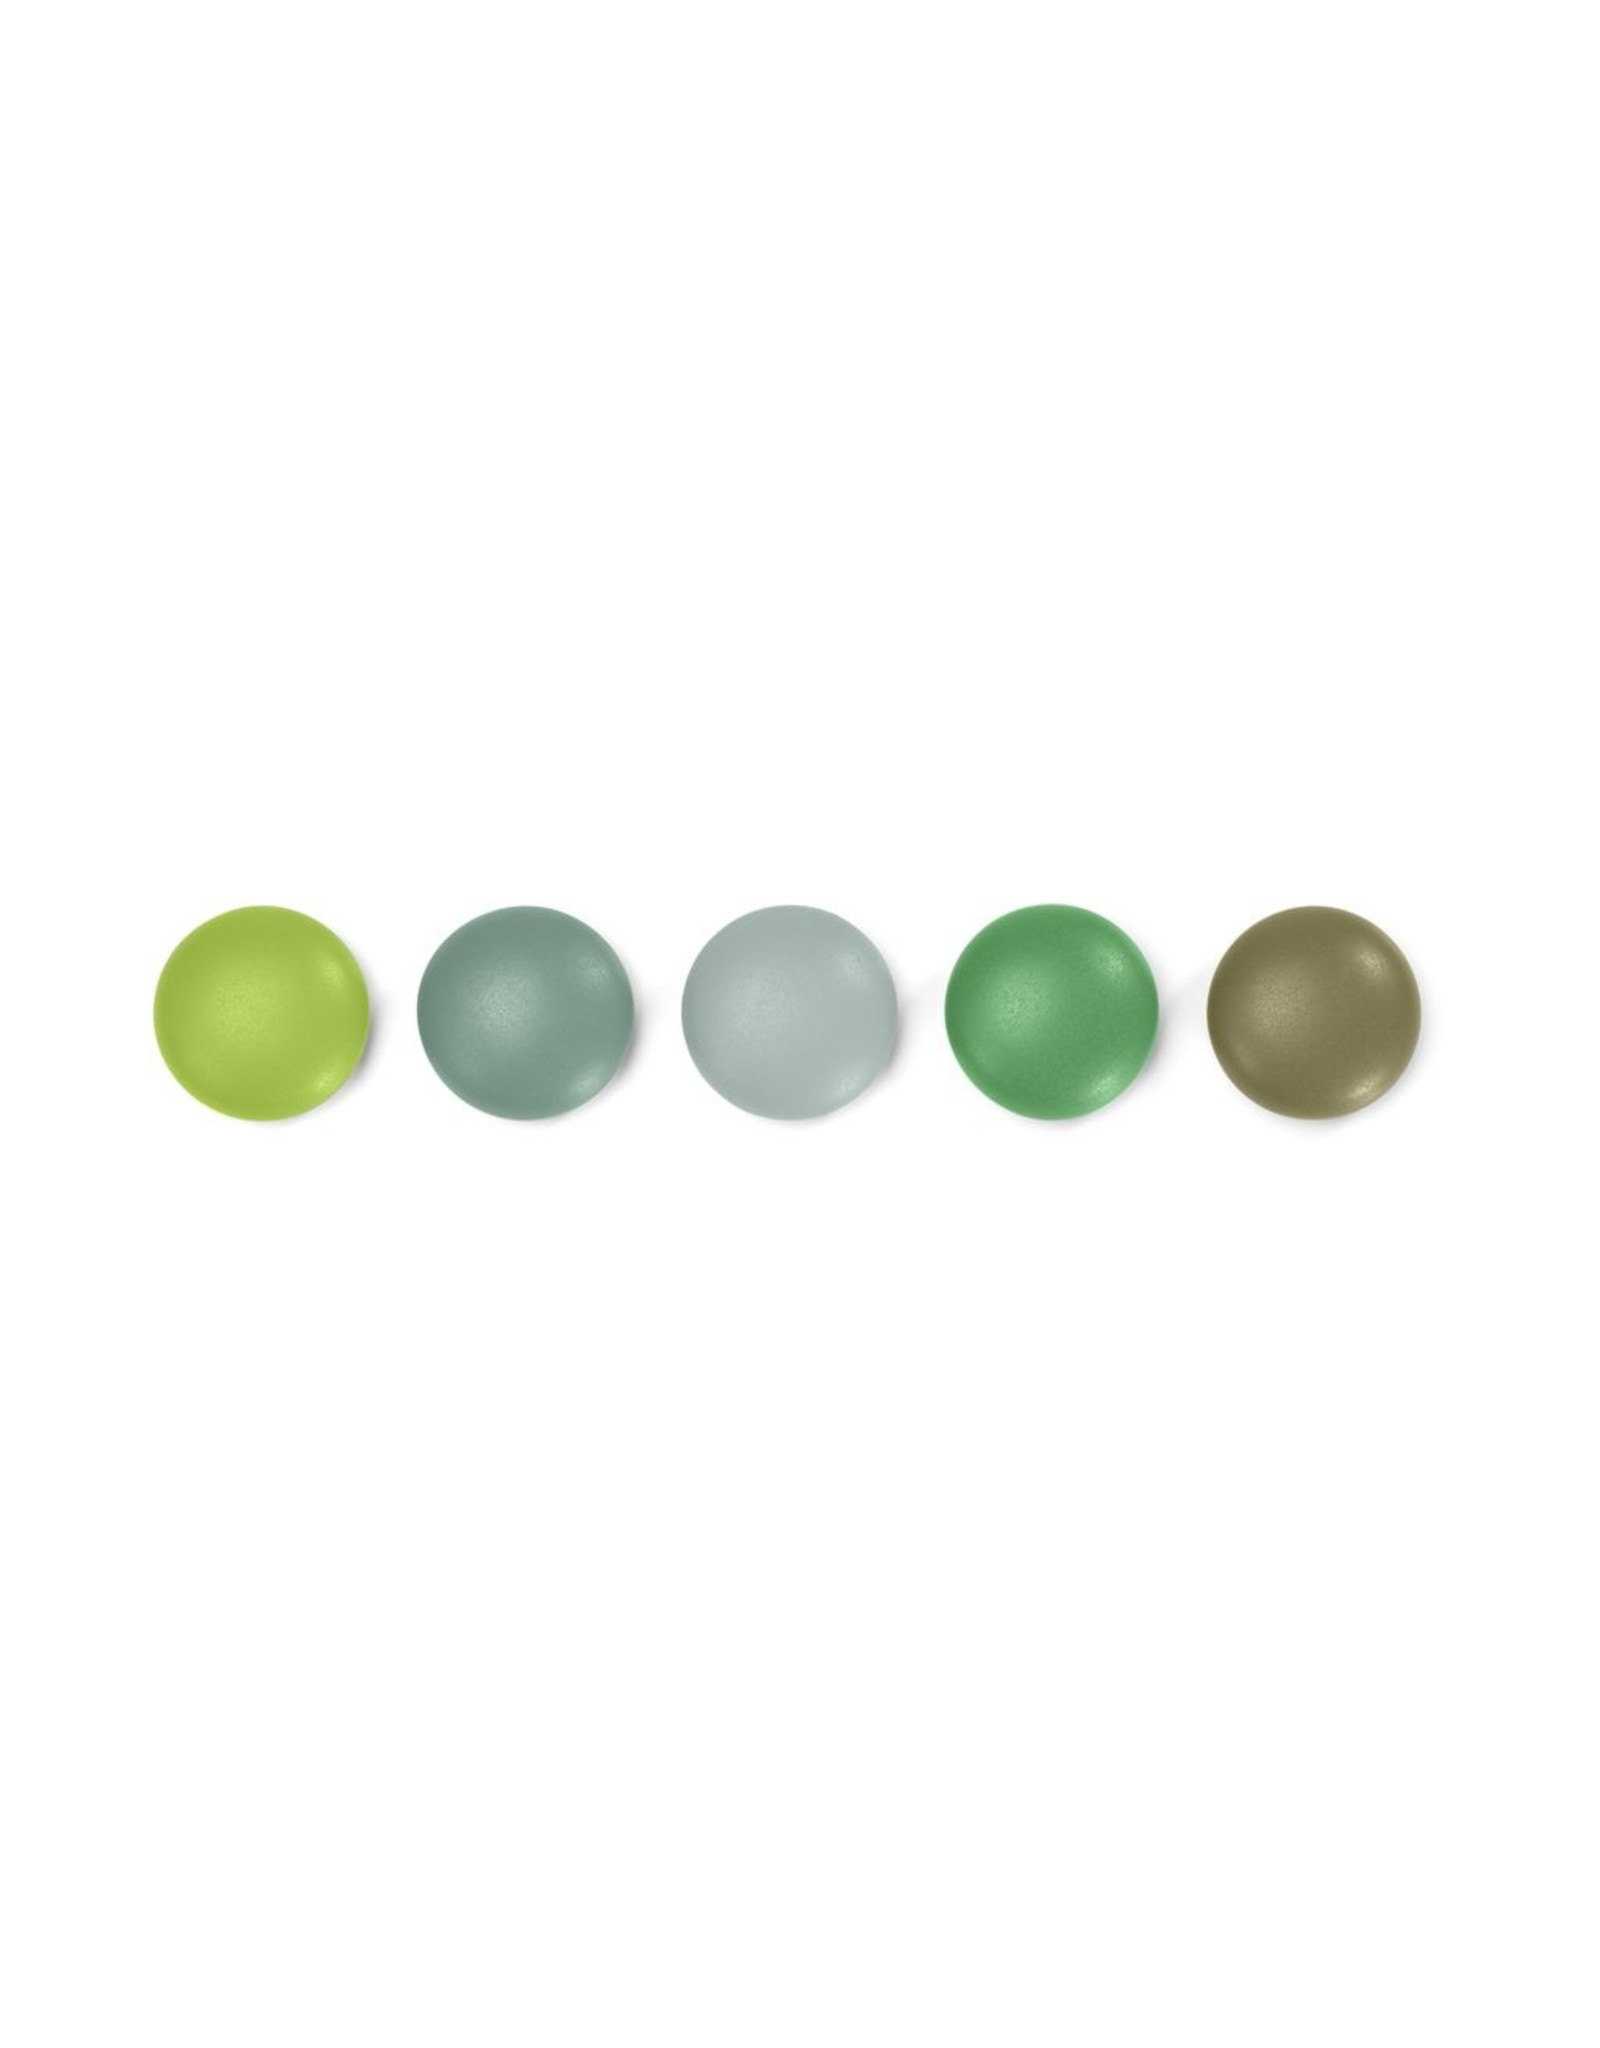 VITRA MAGNET DOT SET GREEN 5PCS